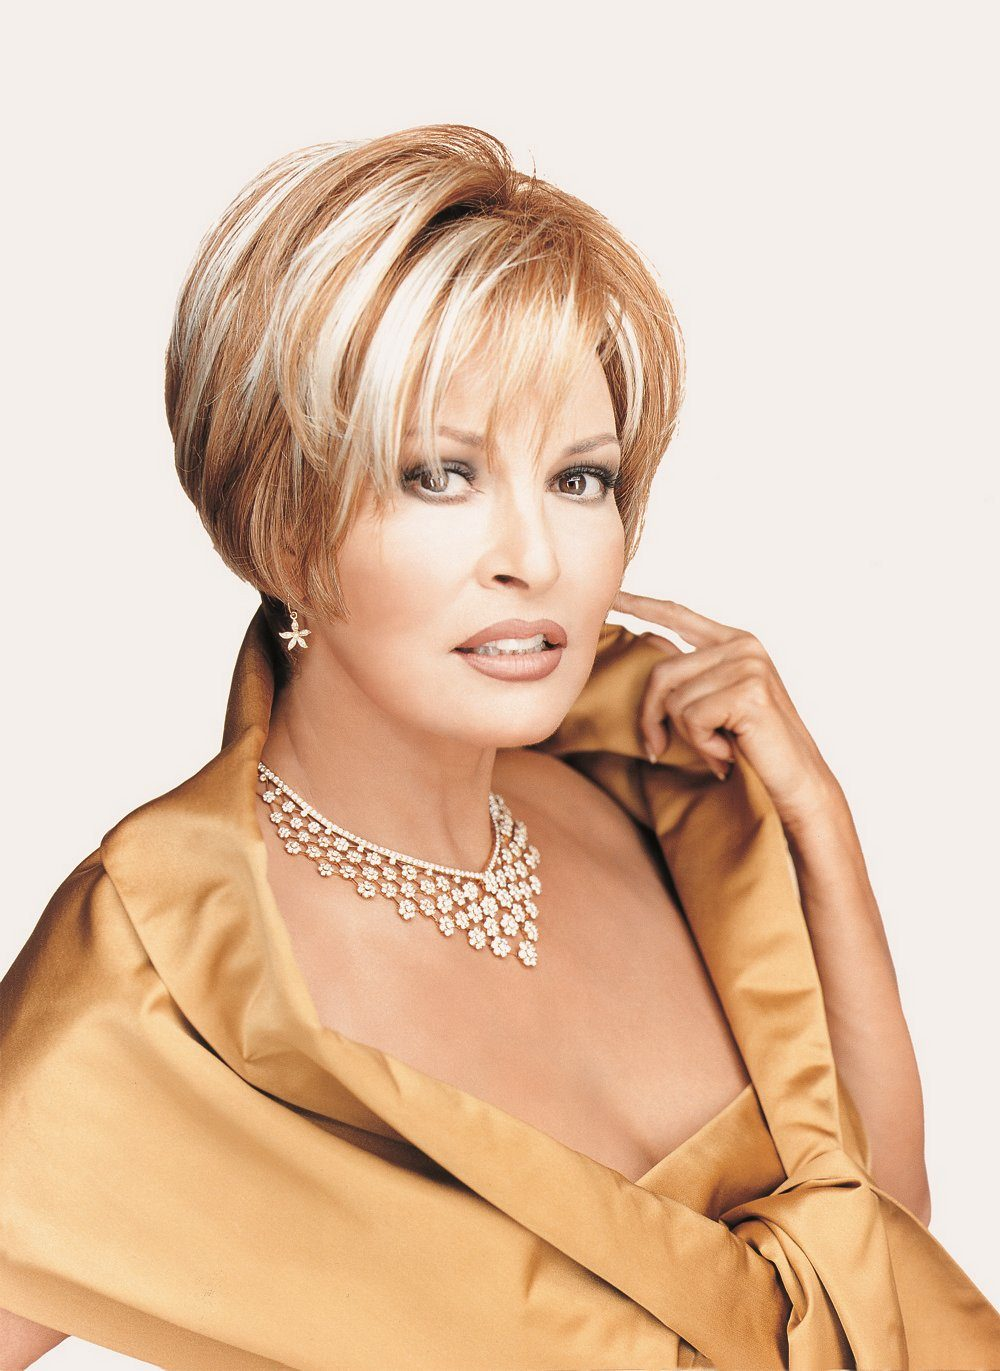 Raquel Welch (USA) | Hot and Beautiful Women of the World Sabrina The Teenage Witch